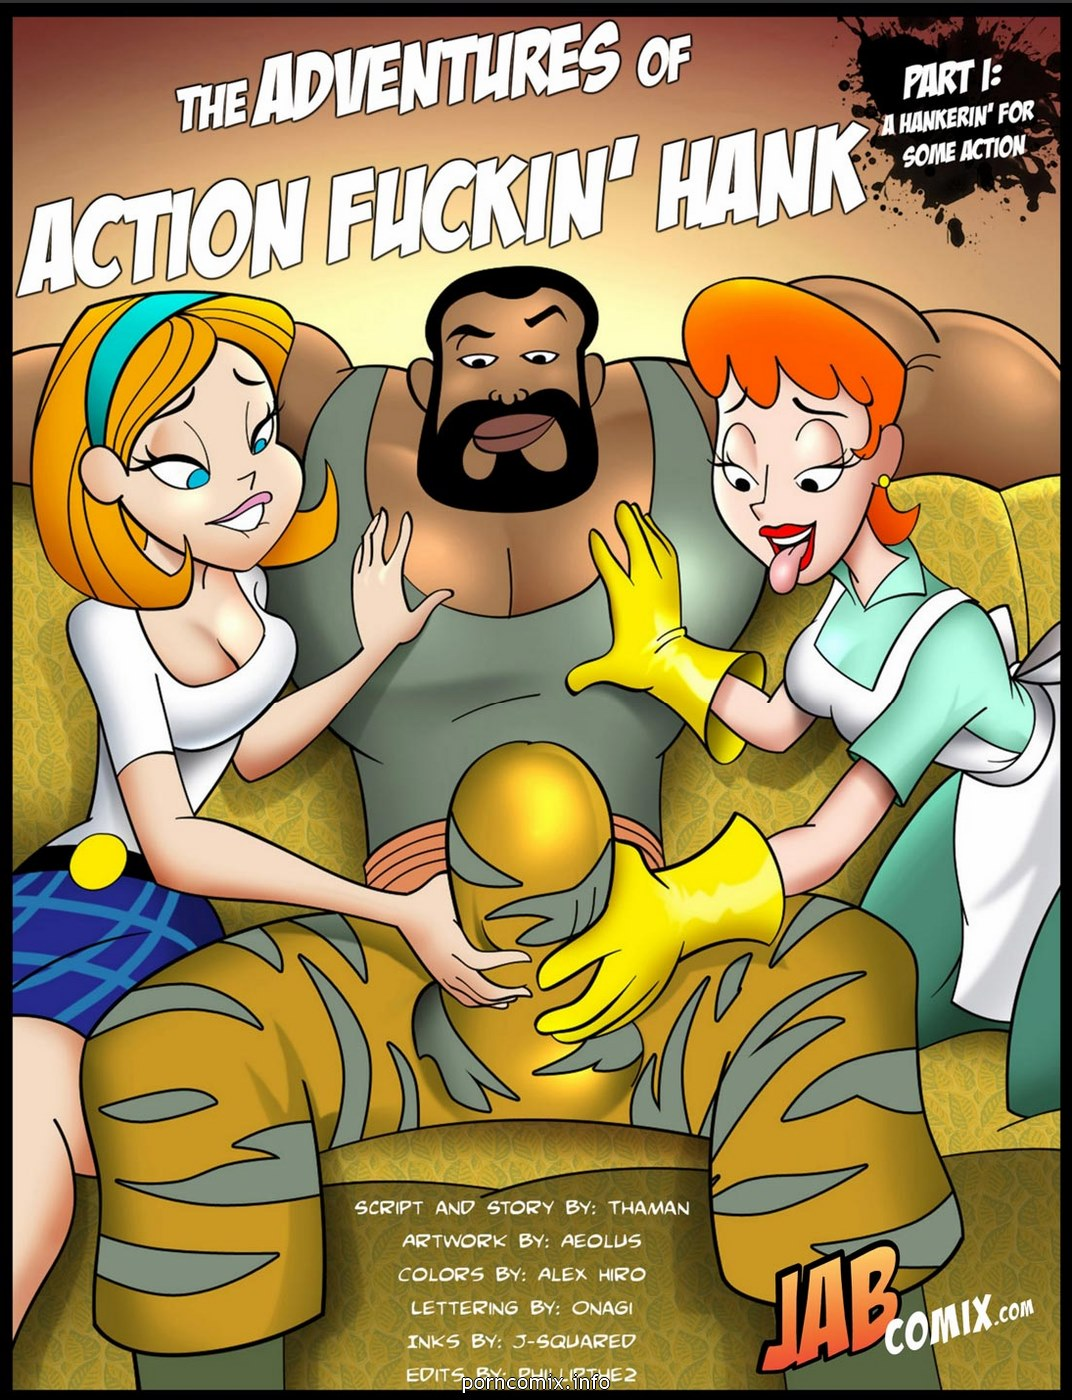 Jab Comix - Adventures of Action Fuckin\' Hank